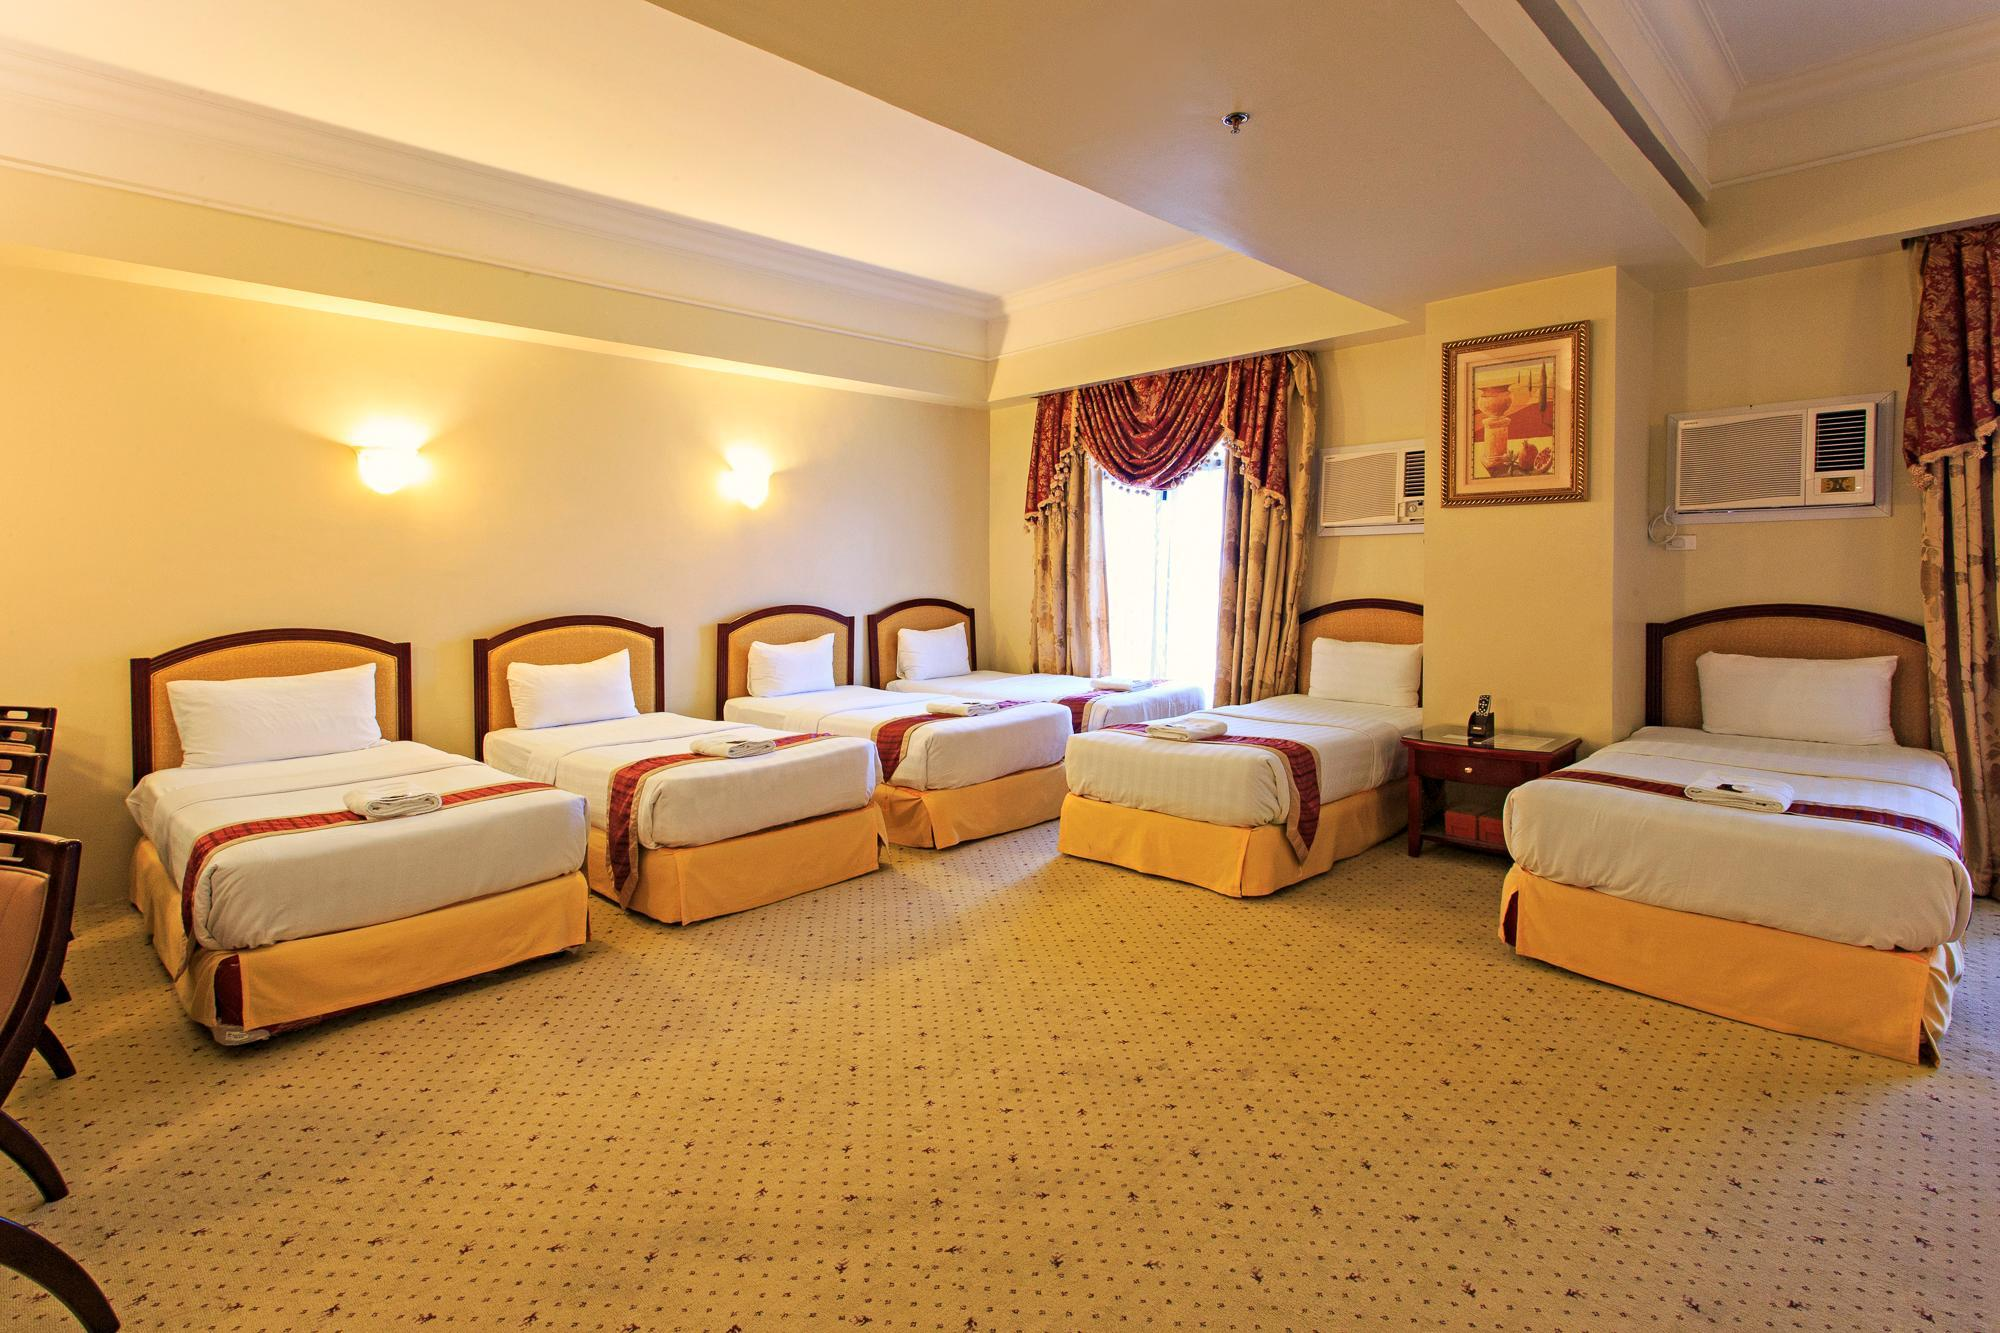 Grand Family Suite (7 pax)